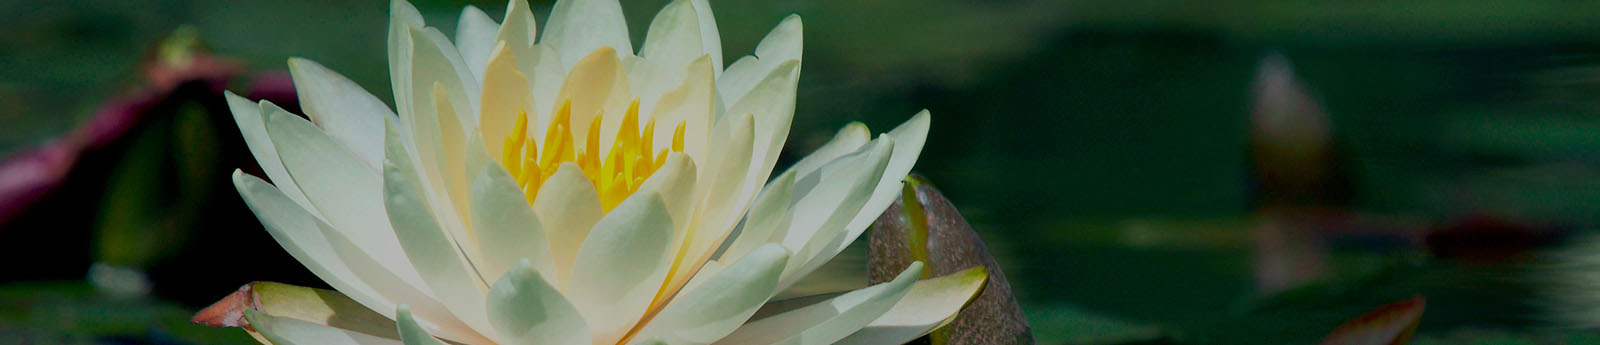 Resources | Finch & Finch Funeral and Cremation Service